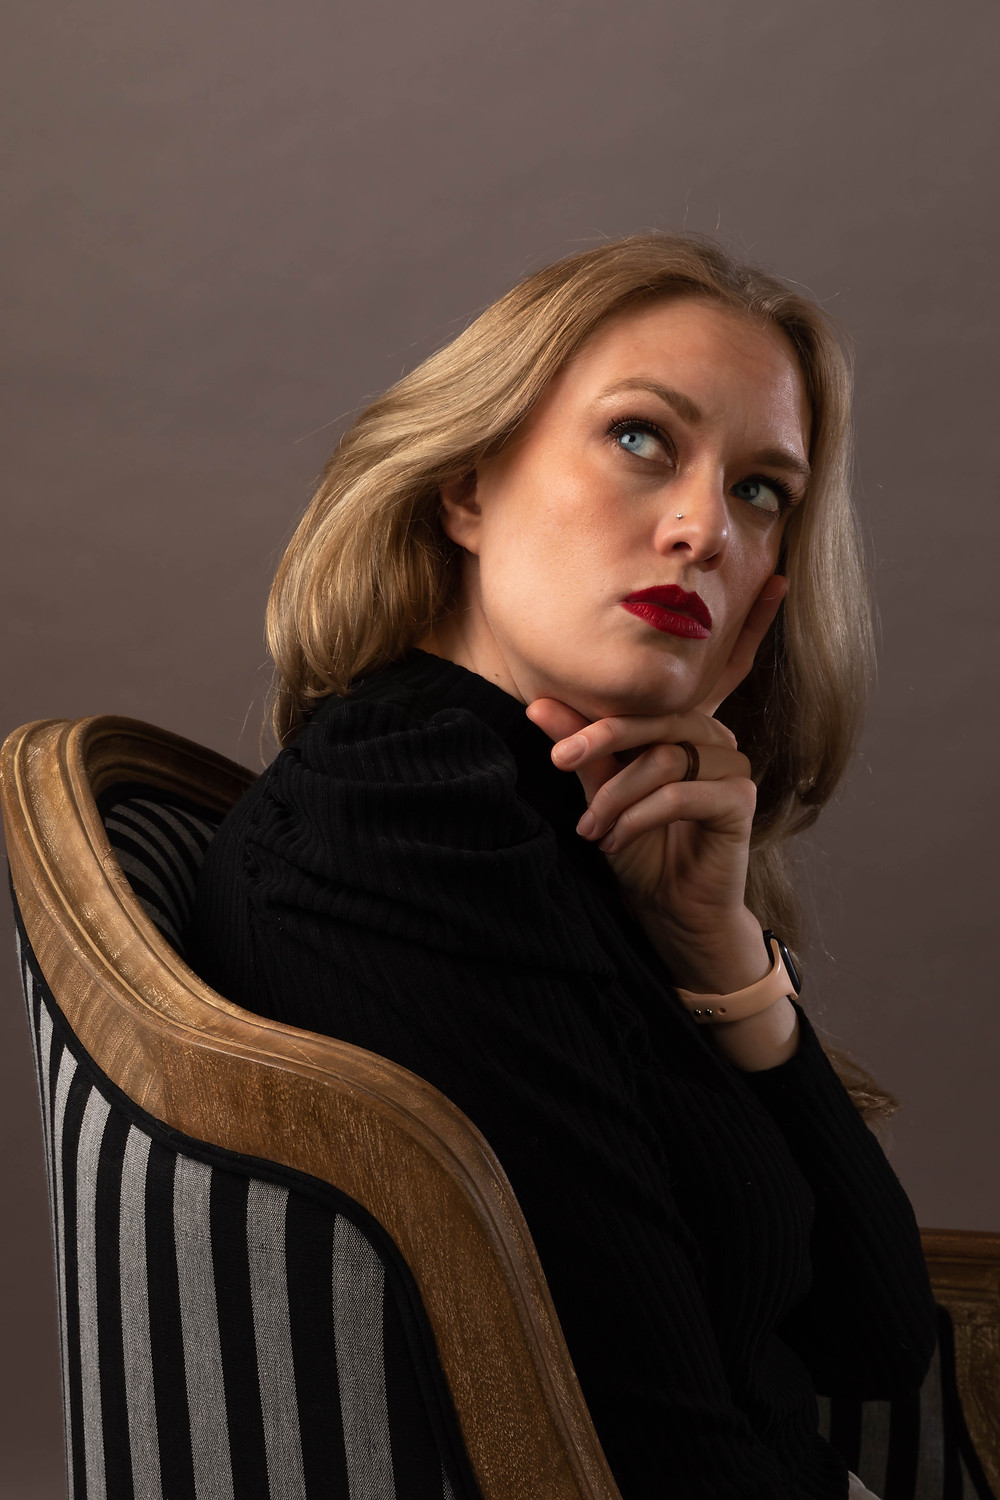 Cincinnati portrait photographer captures image of woman looking upwards on side profile sitting in a chair.